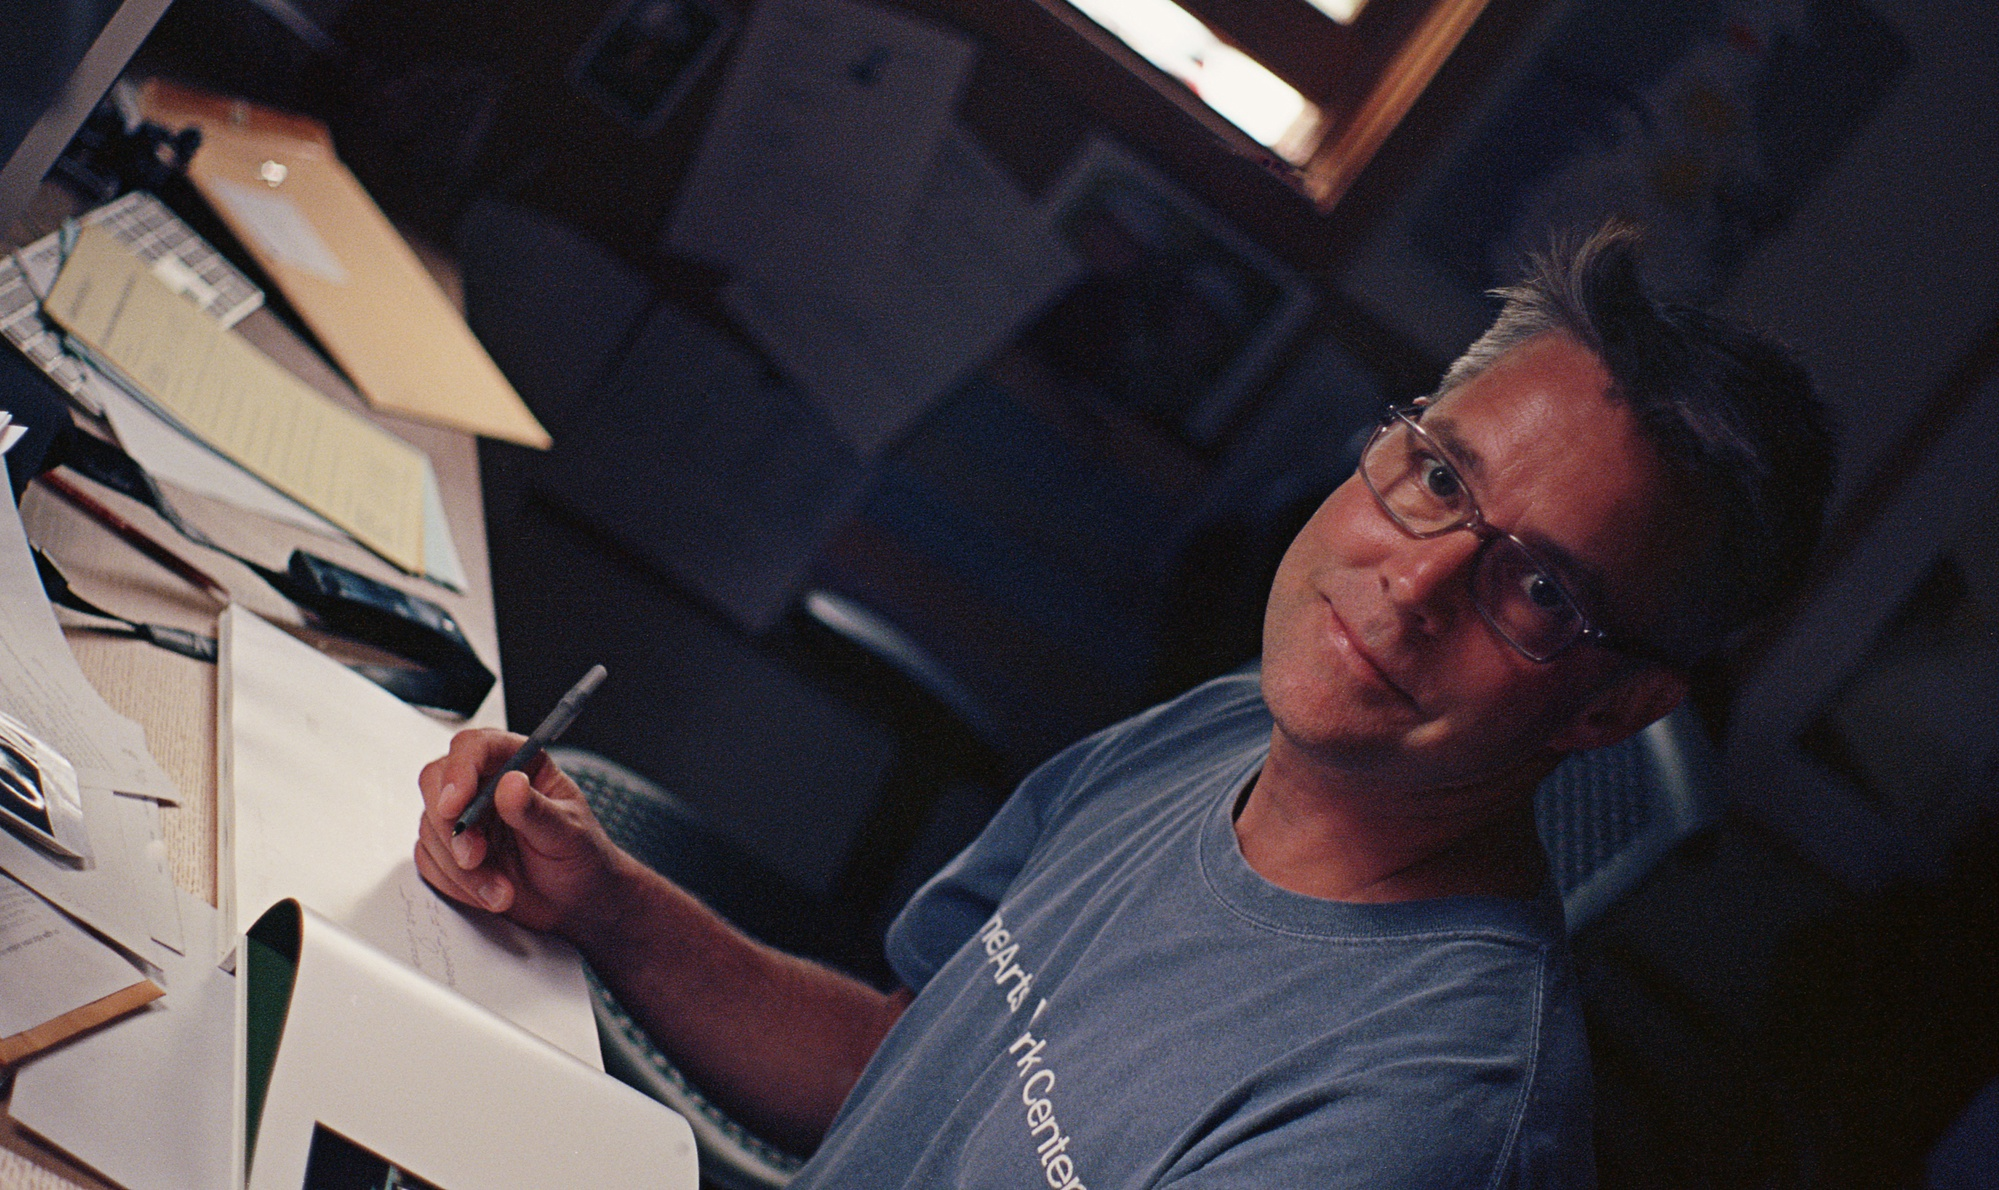 David Hilliard is a visiting artist at the Carpenter Center this year.